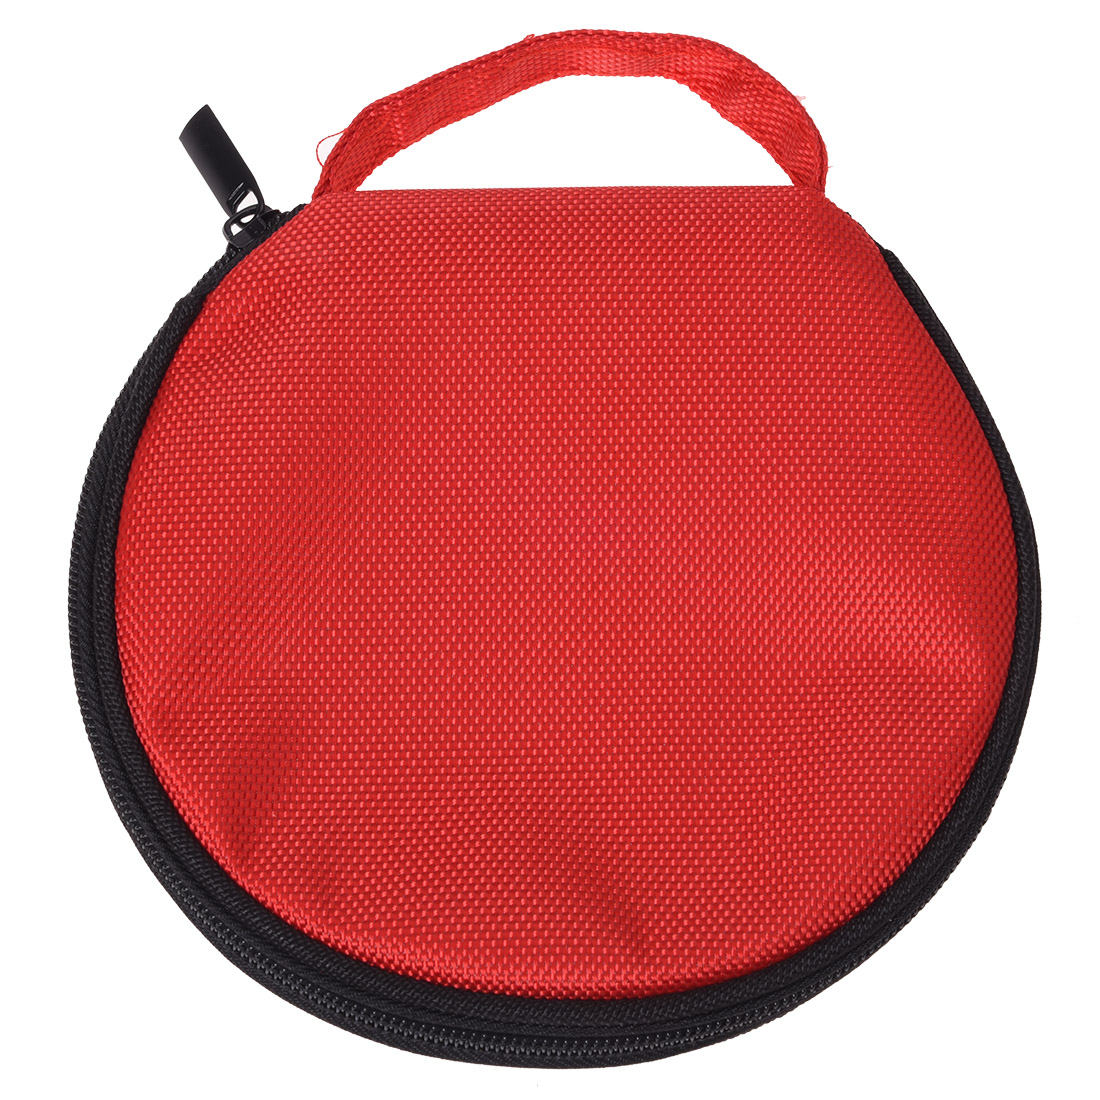 HFES New Hand Carrying Hold 20 CD Discs Zipper Closure Holder Bag Red